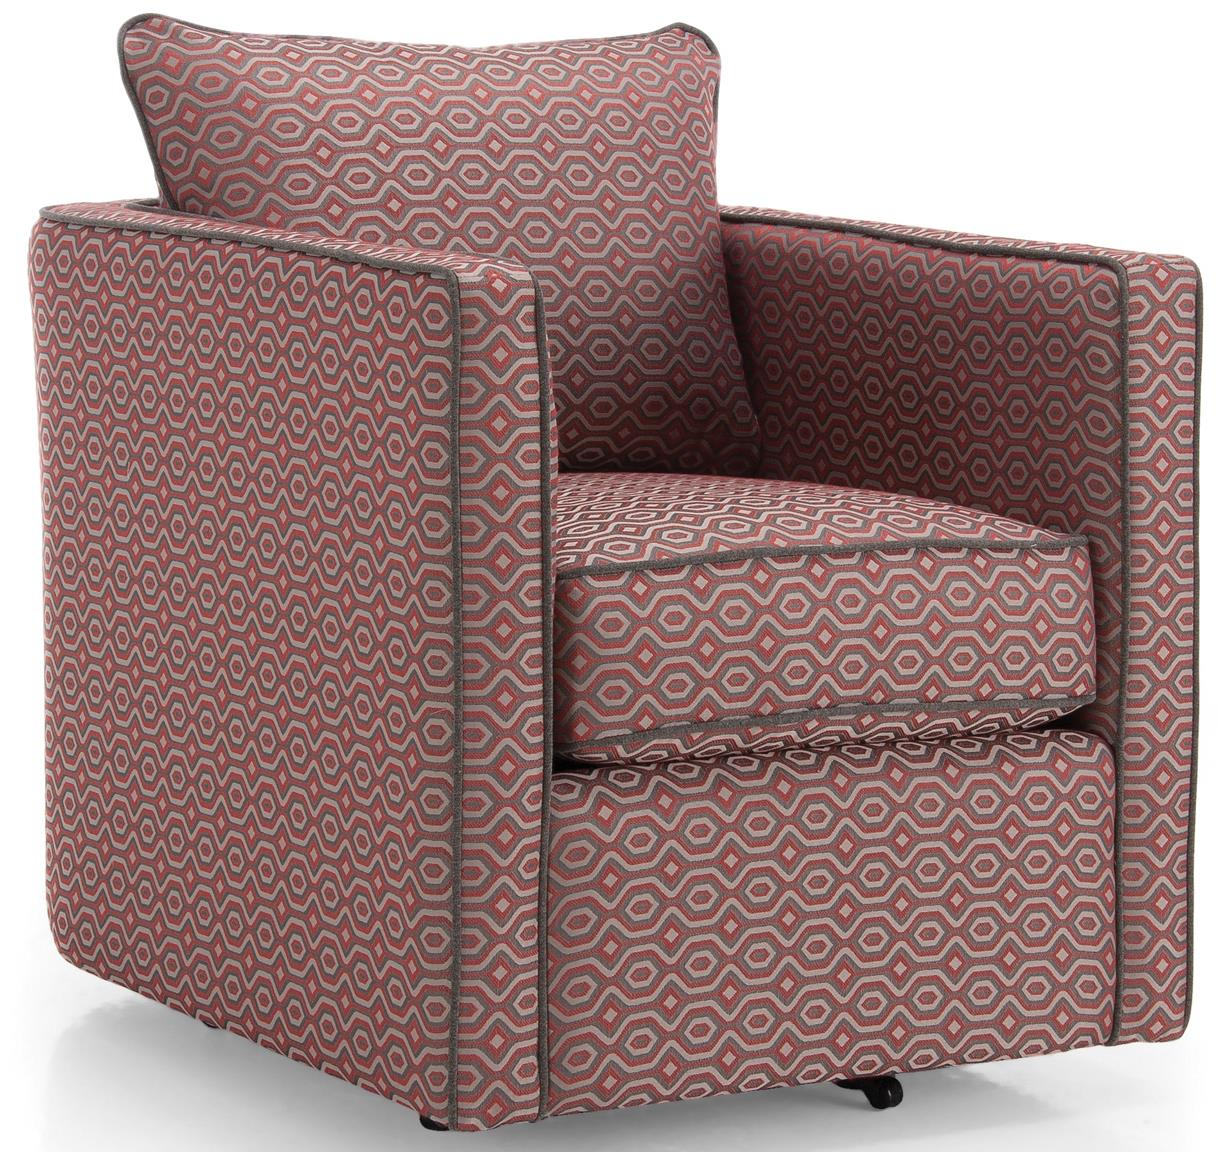 2050 Swivel Chair by Decor-Rest at Upper Room Home Furnishings